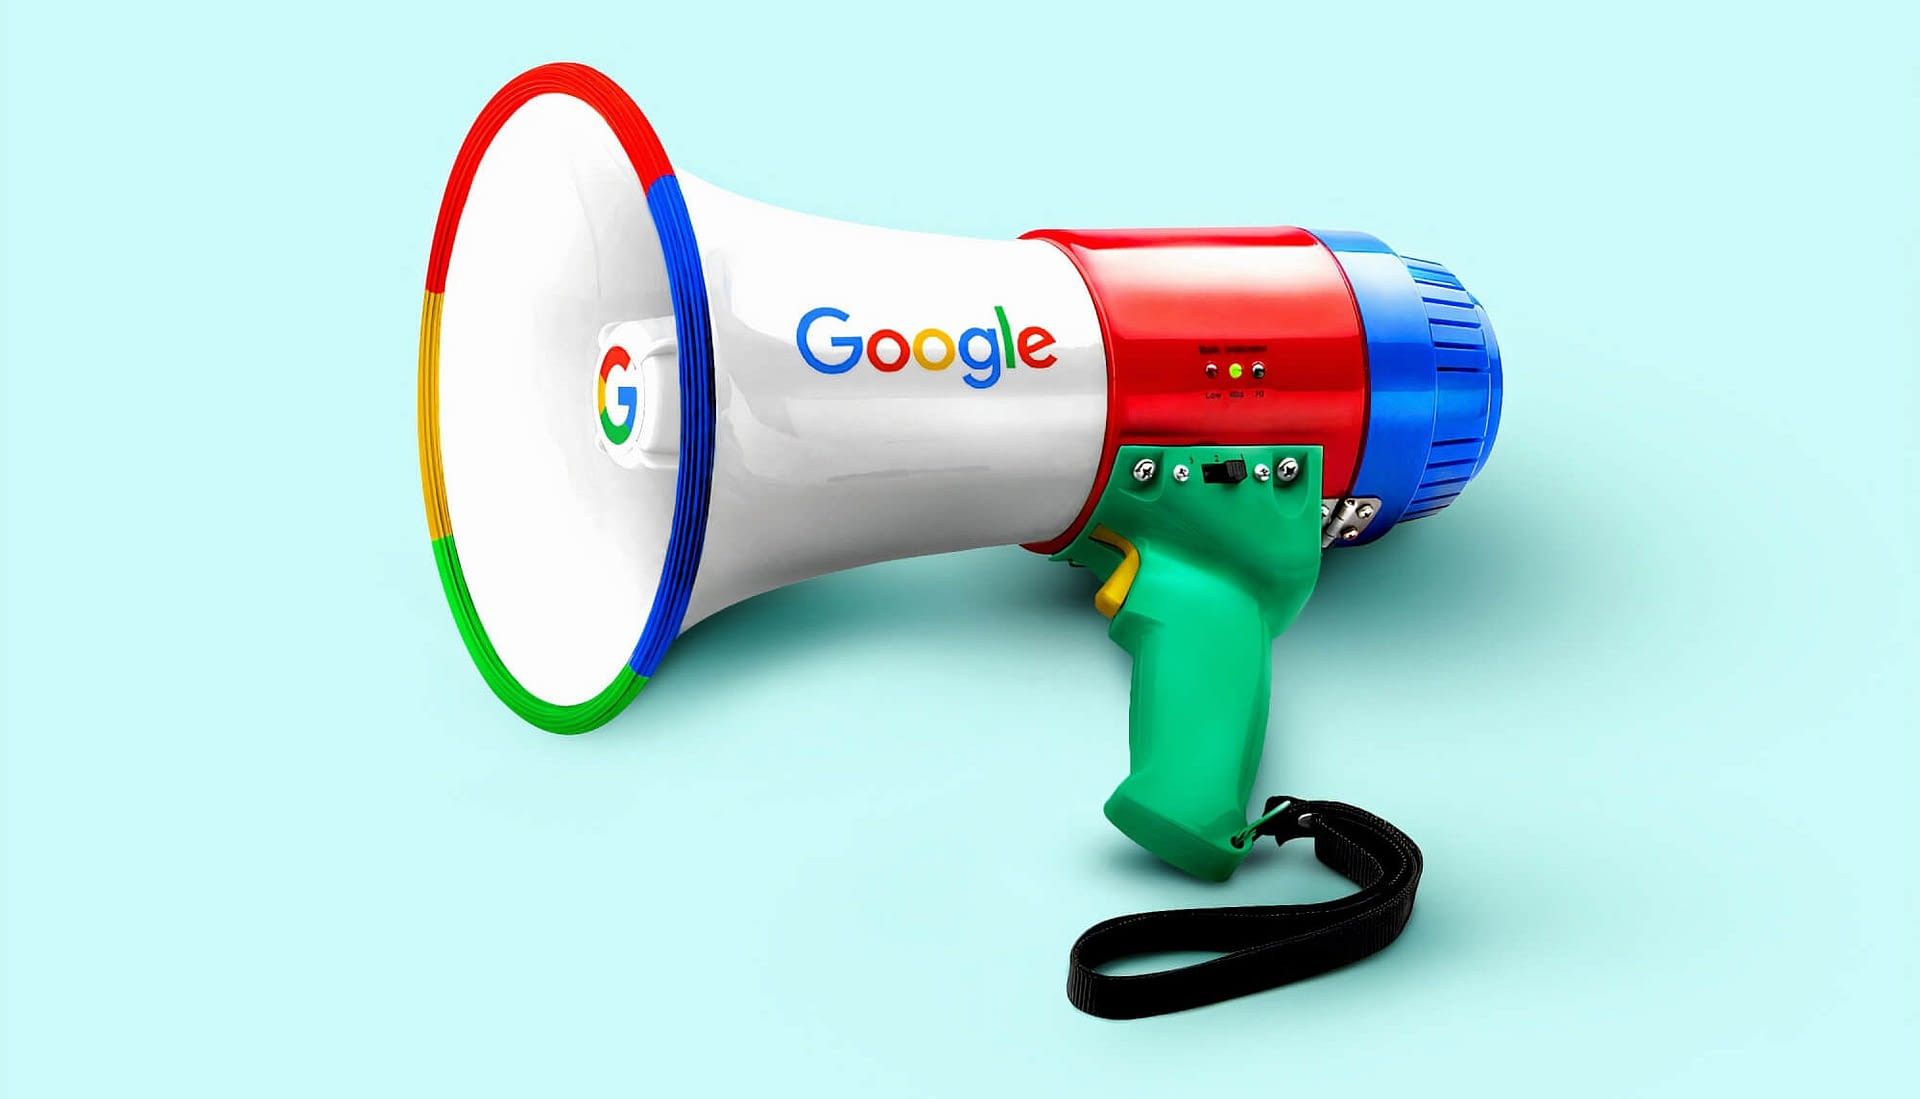 Want Your Business to Rank First On Google? You Need the Google Guaranteed Badge